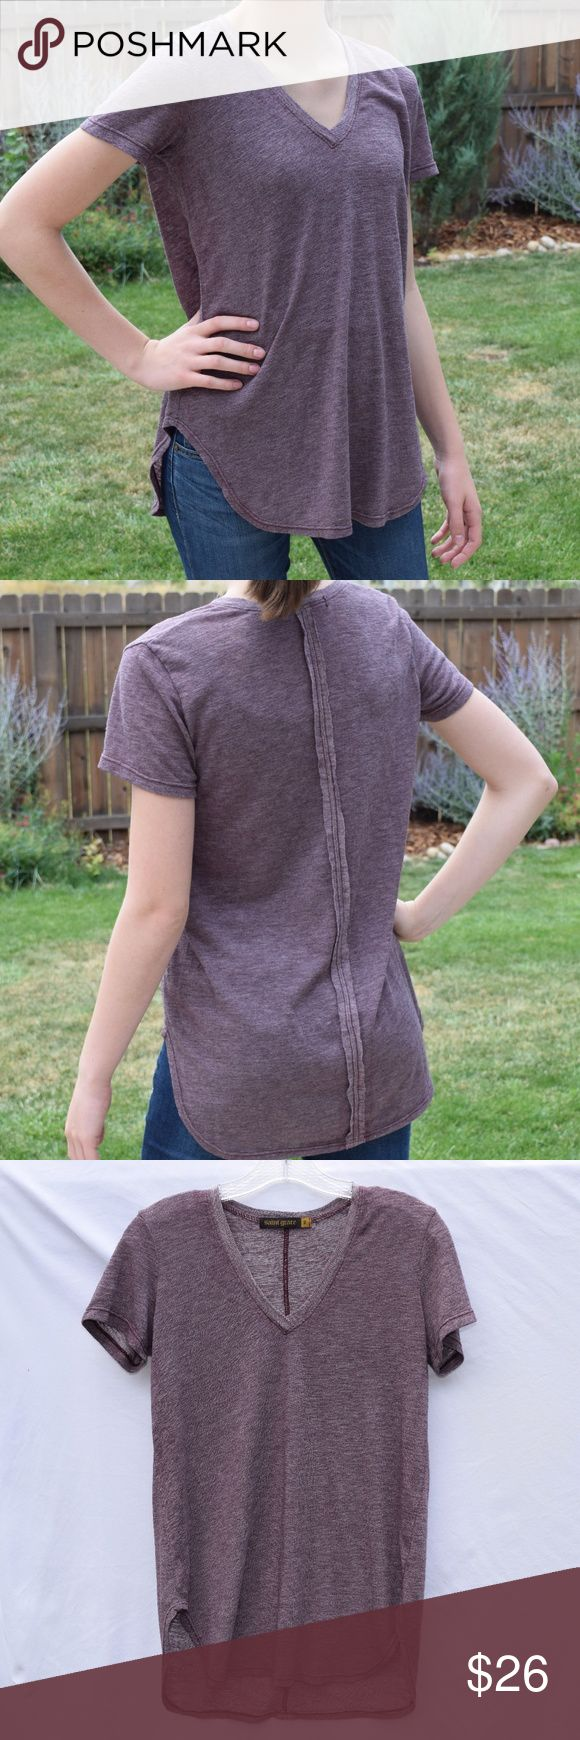 Saint Grace Long Seamed Purple Top Saint Grace Long Seamed Purple Top  -Excellent condition -Saint Grace brand -Comfy, quality material for a cute, loose fit -Goes well with jeans for a casual look or leggings for high comfort! Saint Grace Tops Tees - Short Sleeve